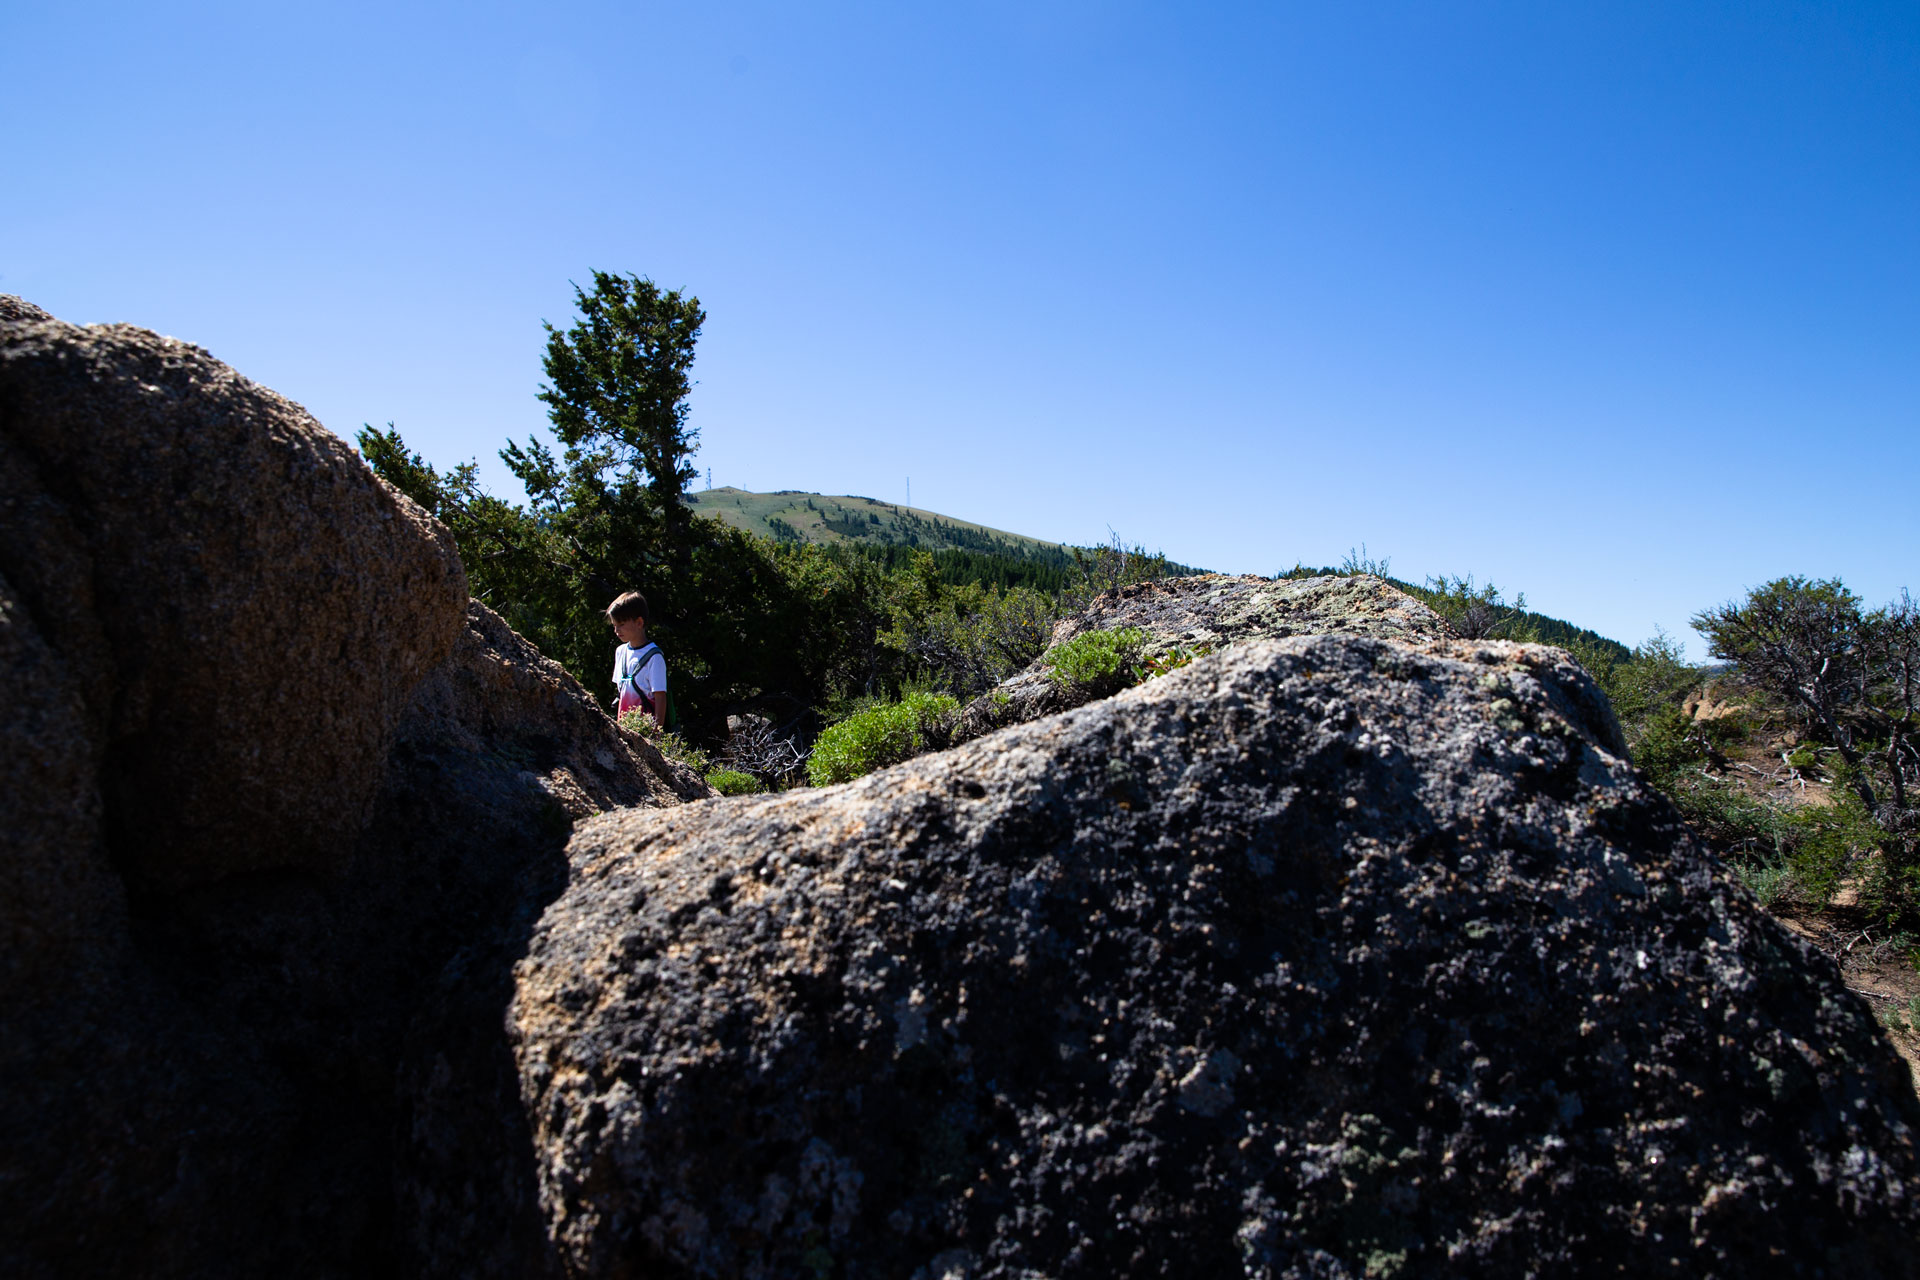 young boy walking though the rocks on the top of a mountain with the trees behind him